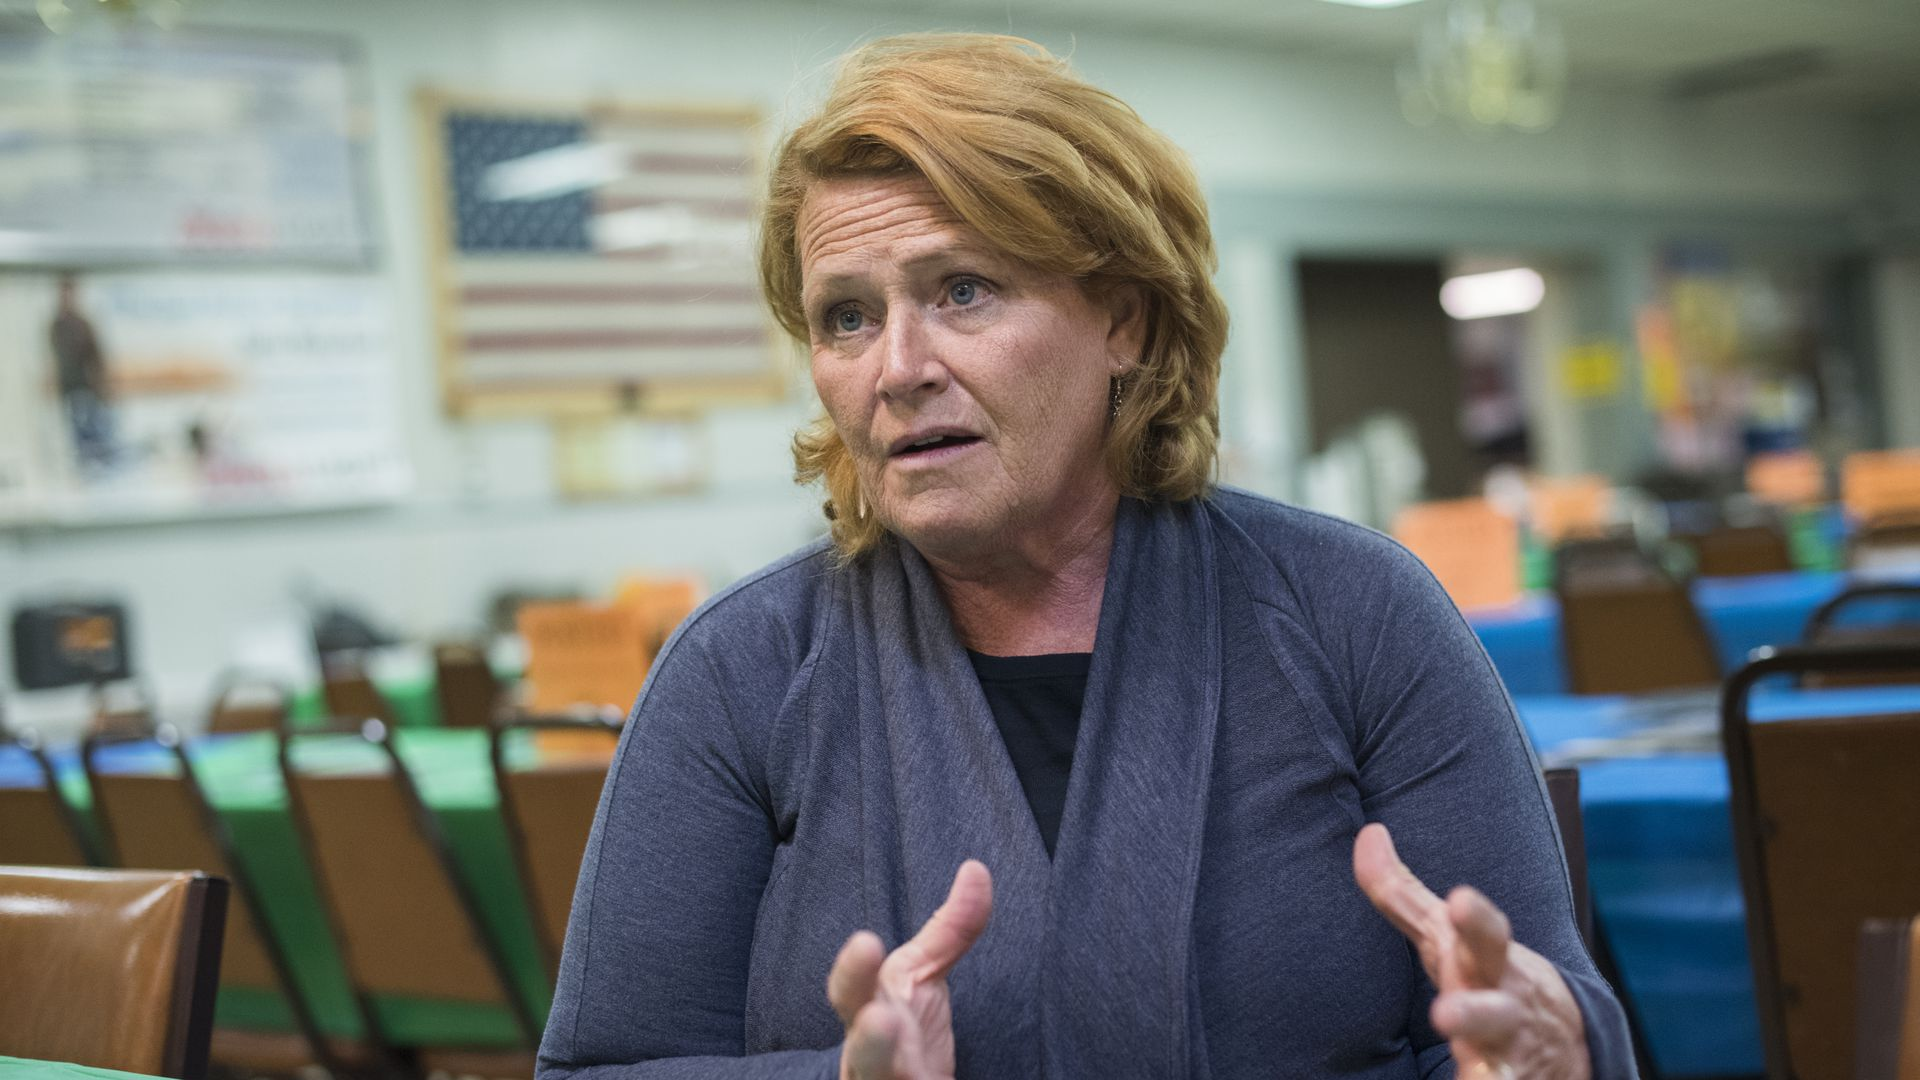 Heidi Heitkamp looks upset and gestures.